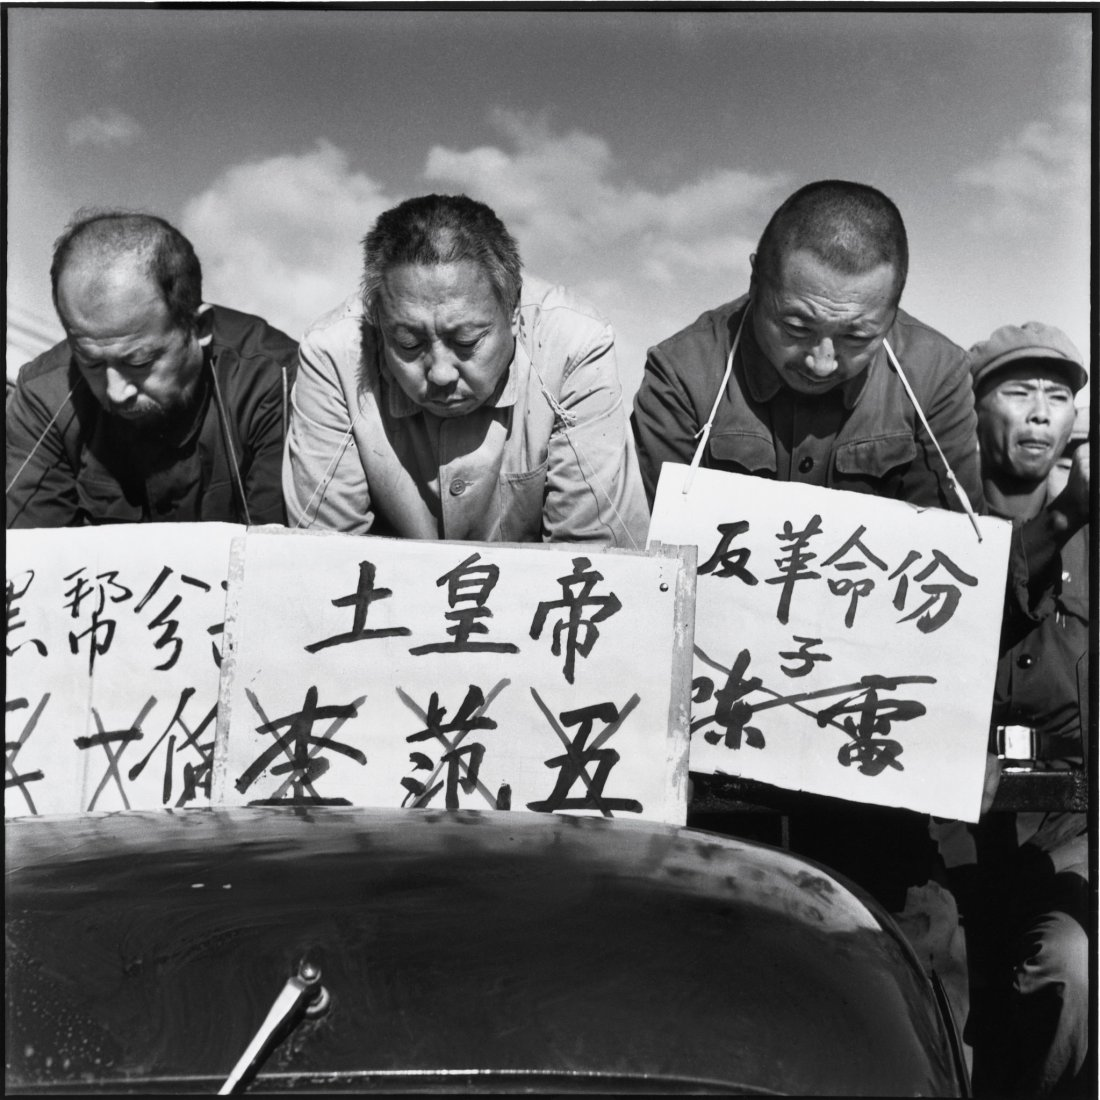 Three men are paraded through the streets of Harbin on Sept. 12, 1966, with their names and the crimes they are charged with from left, black gang element, local despot, counterrevolutionary displayed on placards. Credits: Li Zhensheng | SIPF